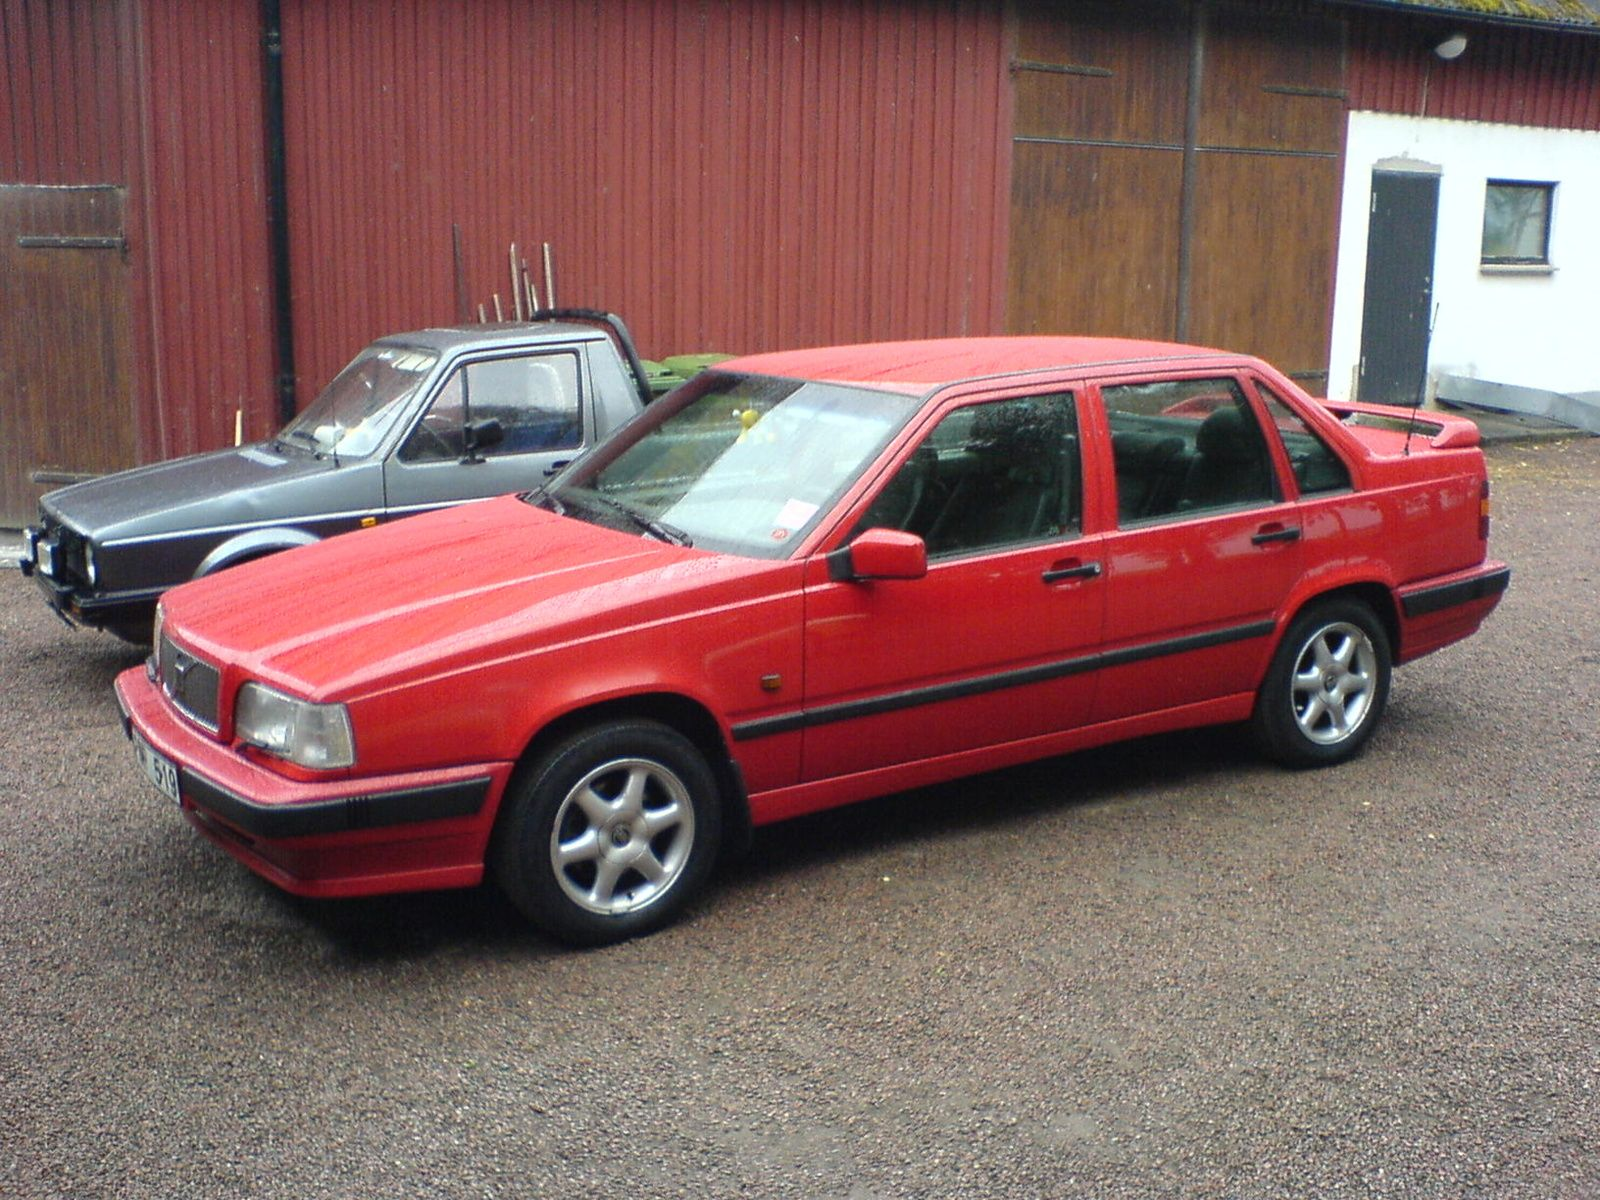 1996 volvo 850 glt red - Google Search   Our Cars   Pinterest ...